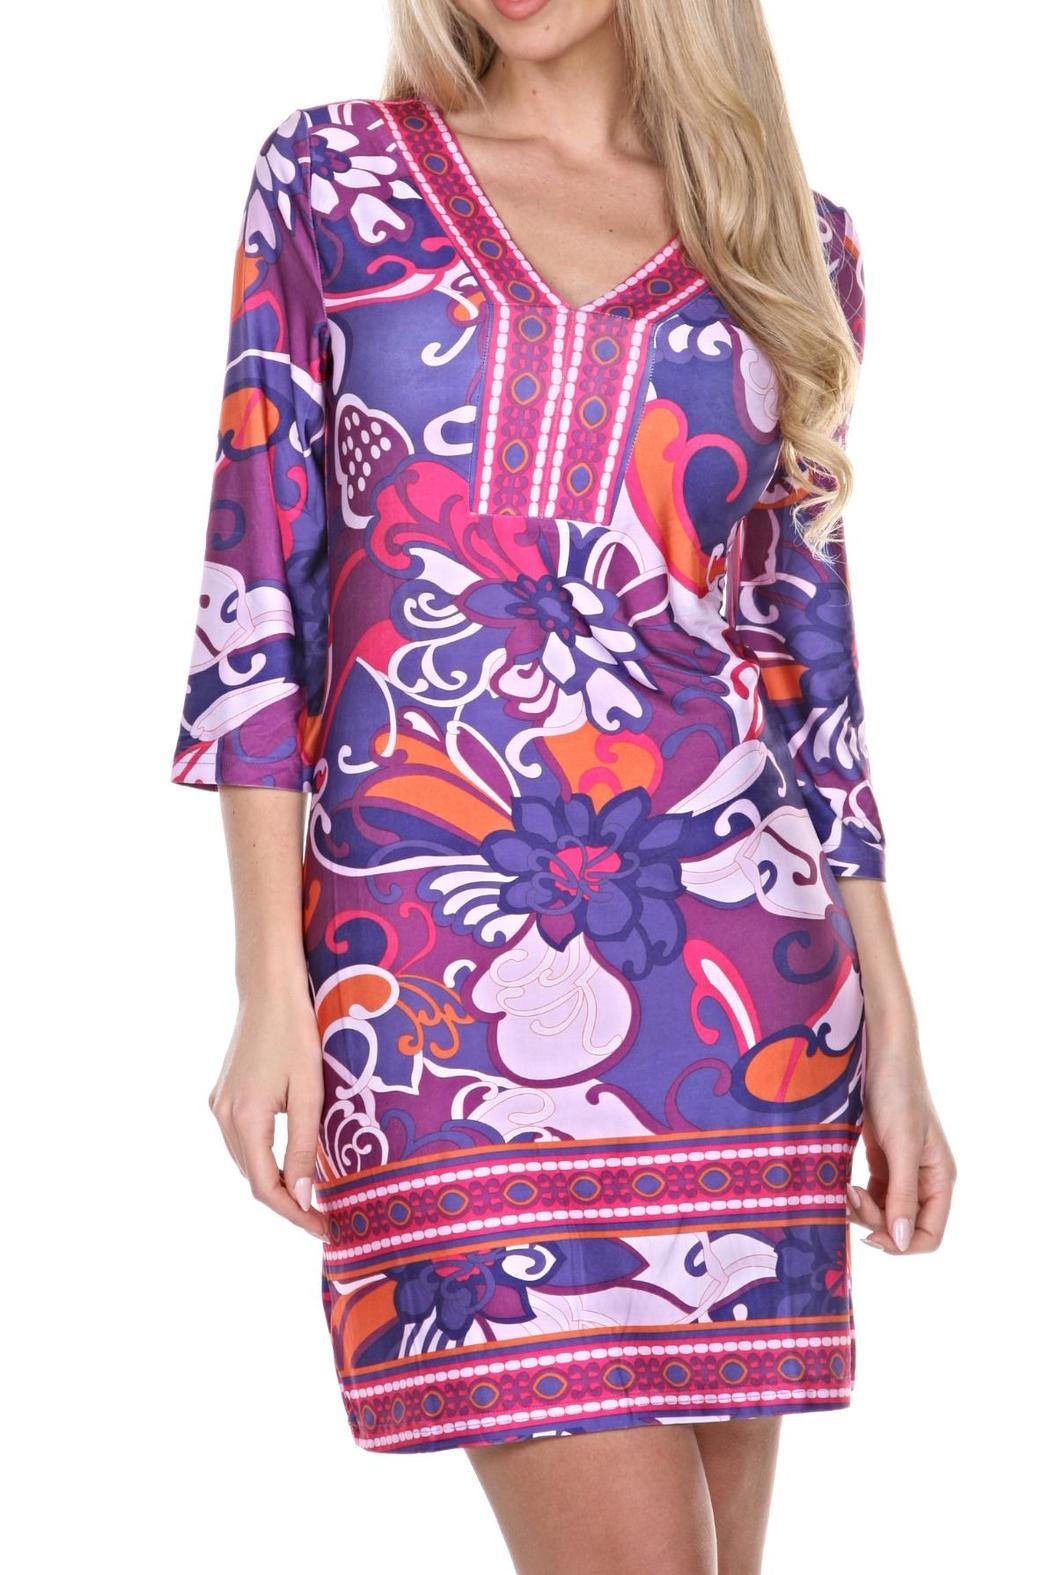 whitemark Floral Tunic Dress - Main Image